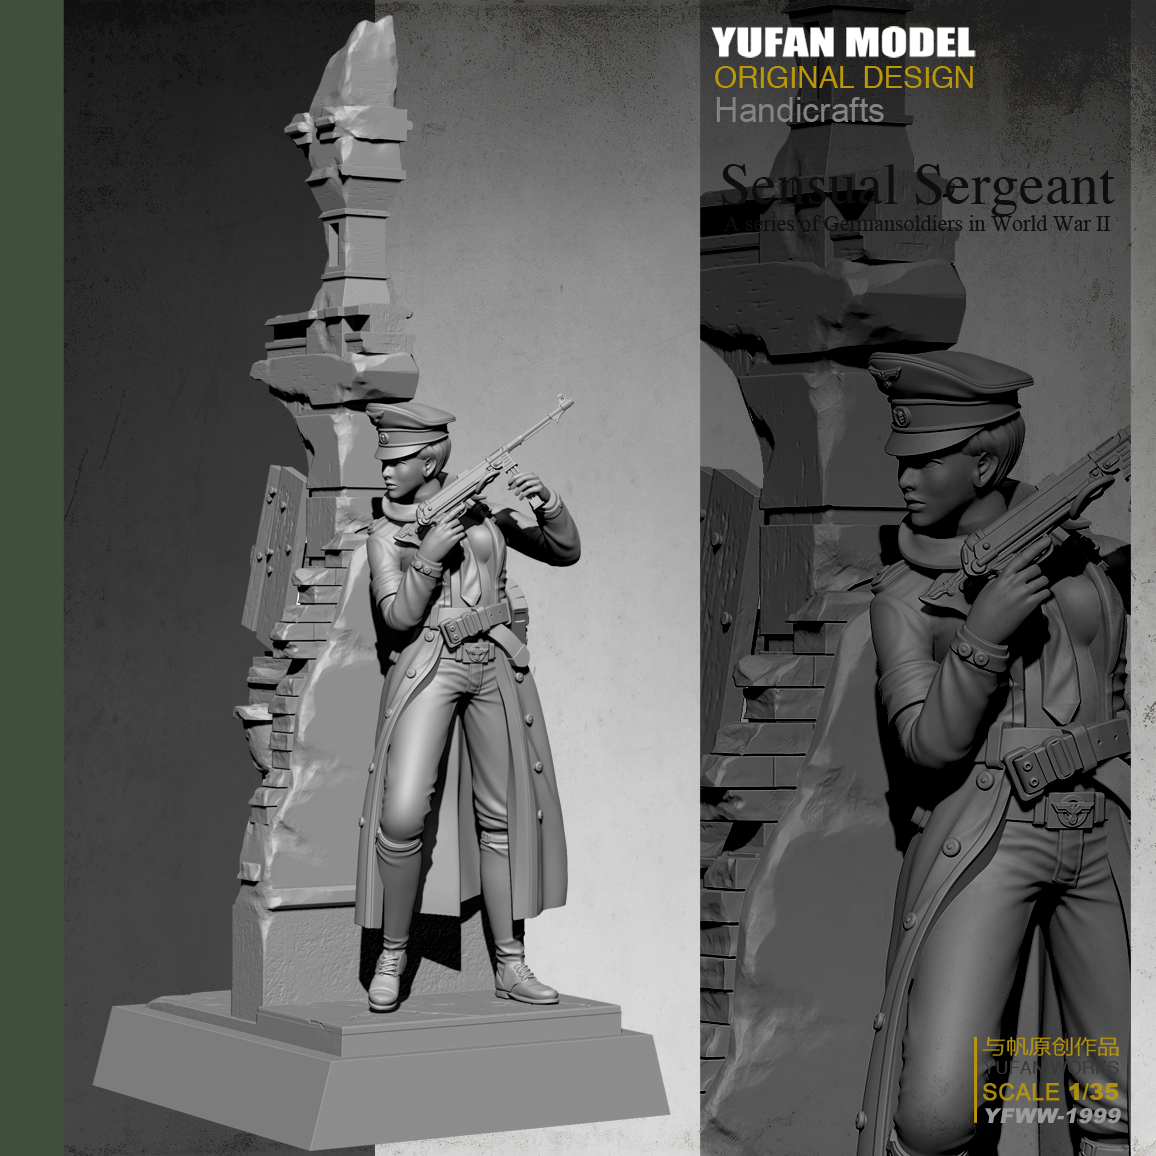 YUFAN MODEL 1/35 Women Officers + Platform Resin Soldiers Colorless And Self-assembled Yfww35-1999